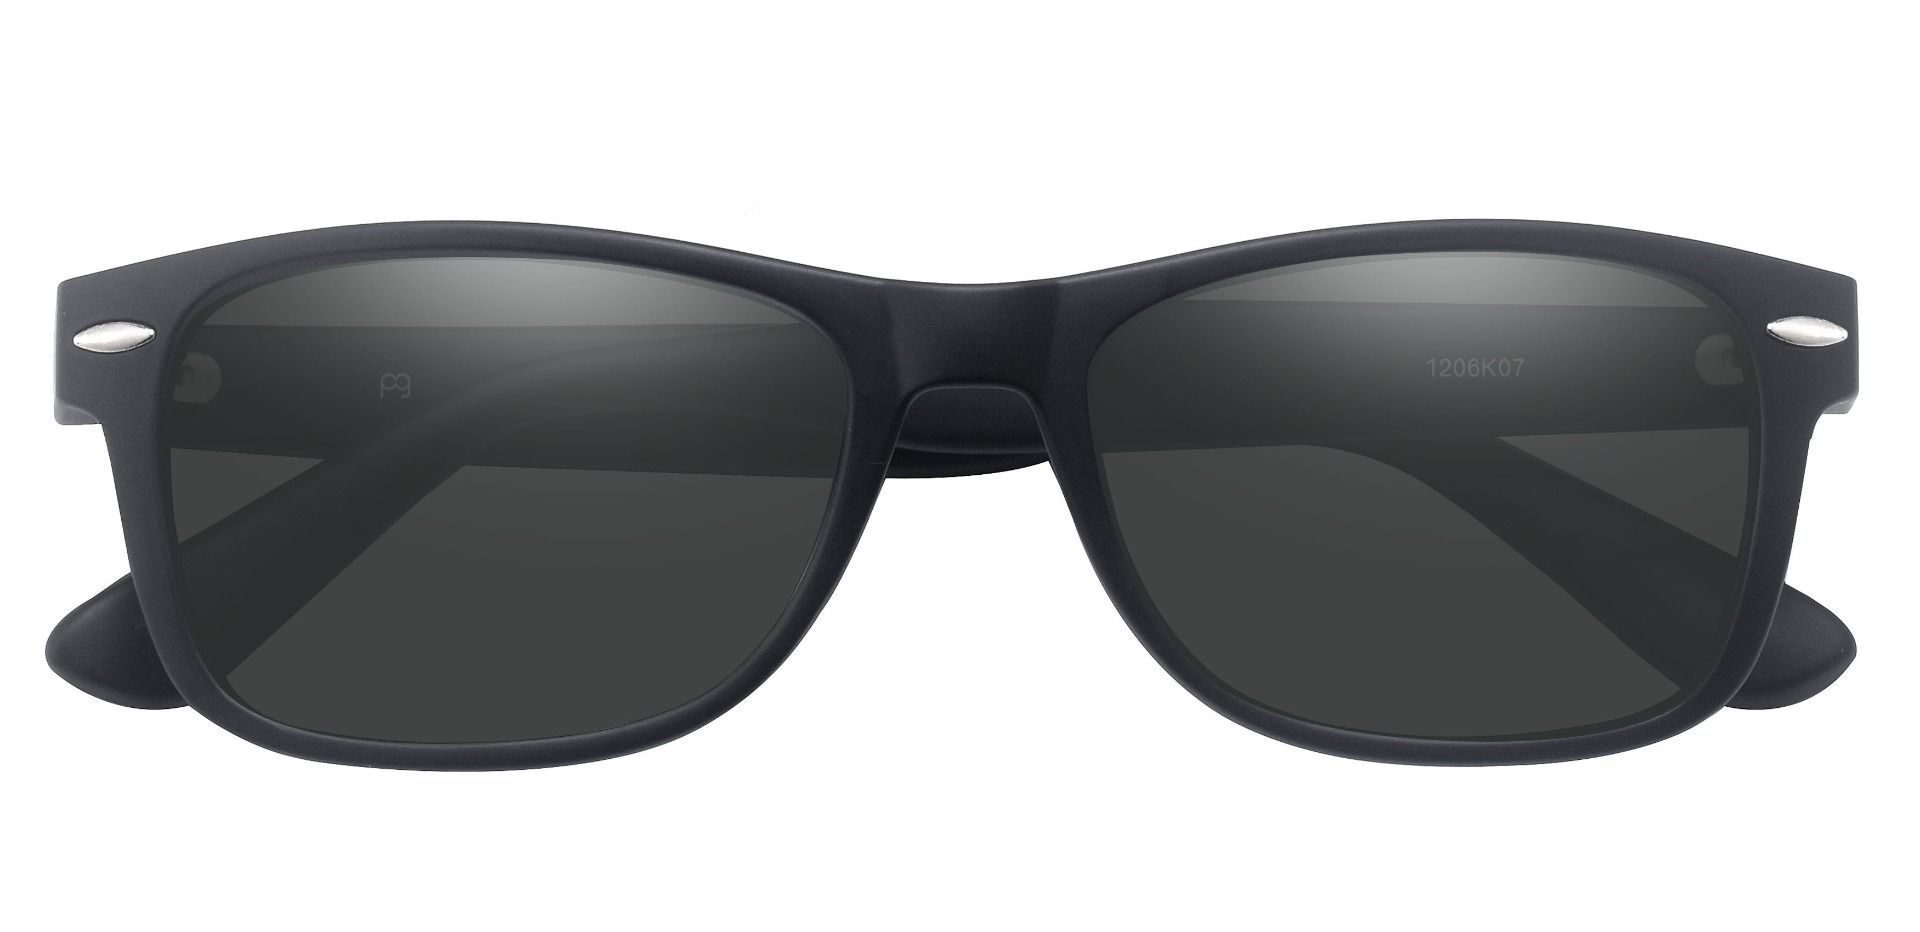 Kent Rectangle Prescription Sunglasses - Black Frame With Gray Lenses